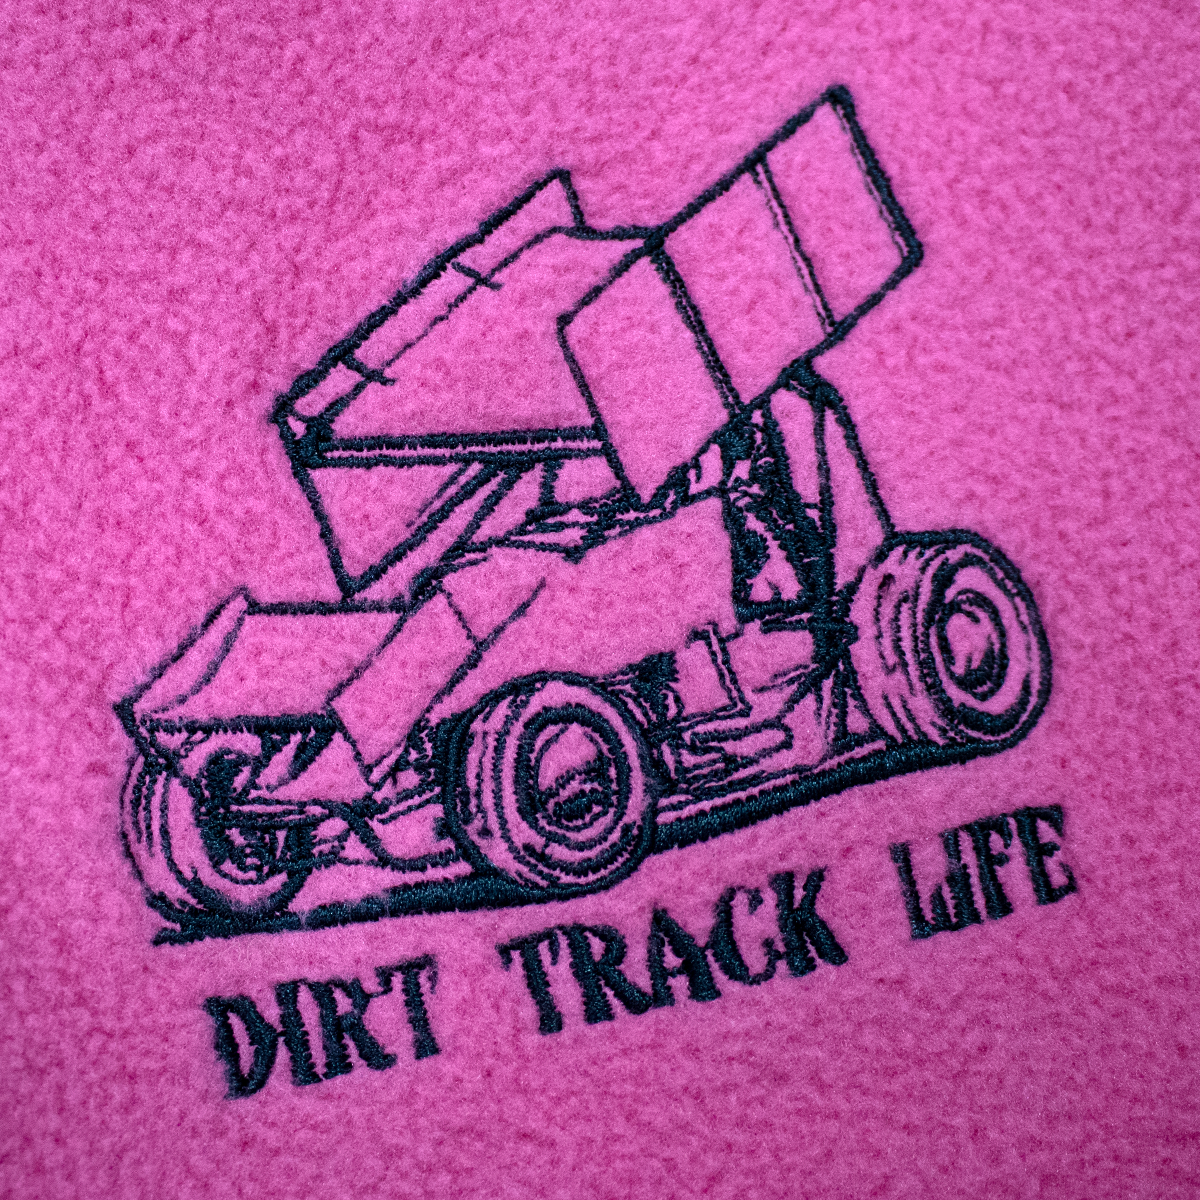 Dirt Track Life Embroidered Youth Fleece Jacket Black Or Pink Spri Fearless Race Wear